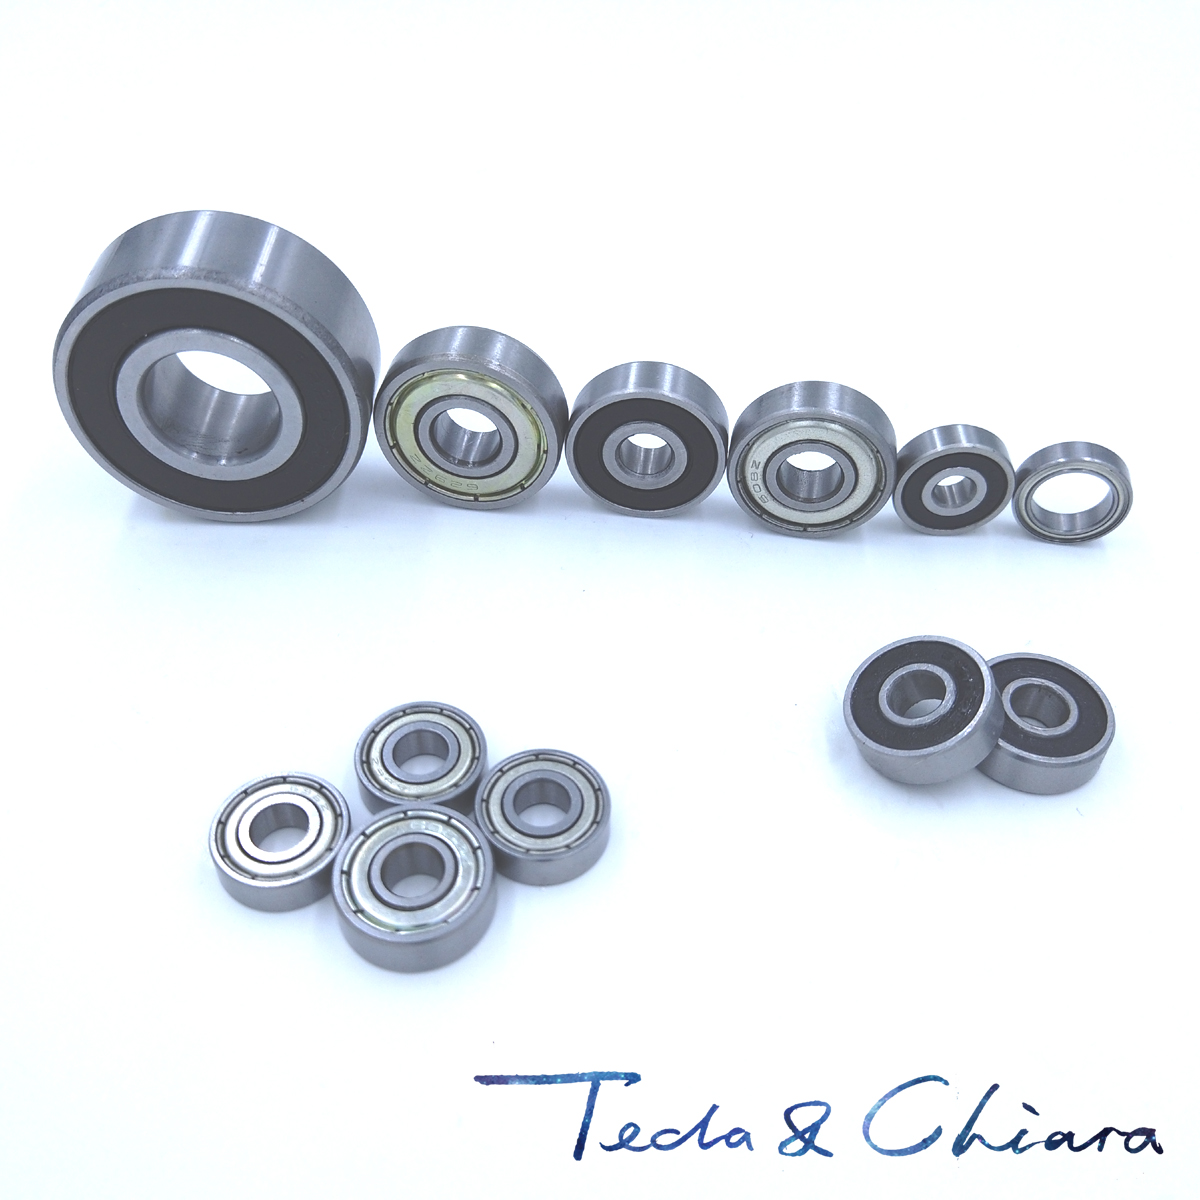 638 638ZZ 638RS 638-2Z 638Z 638-2RS ZZ RS RZ 2RZ Deep Groove Ball Bearings 8 x 28 x 9mm High Quality